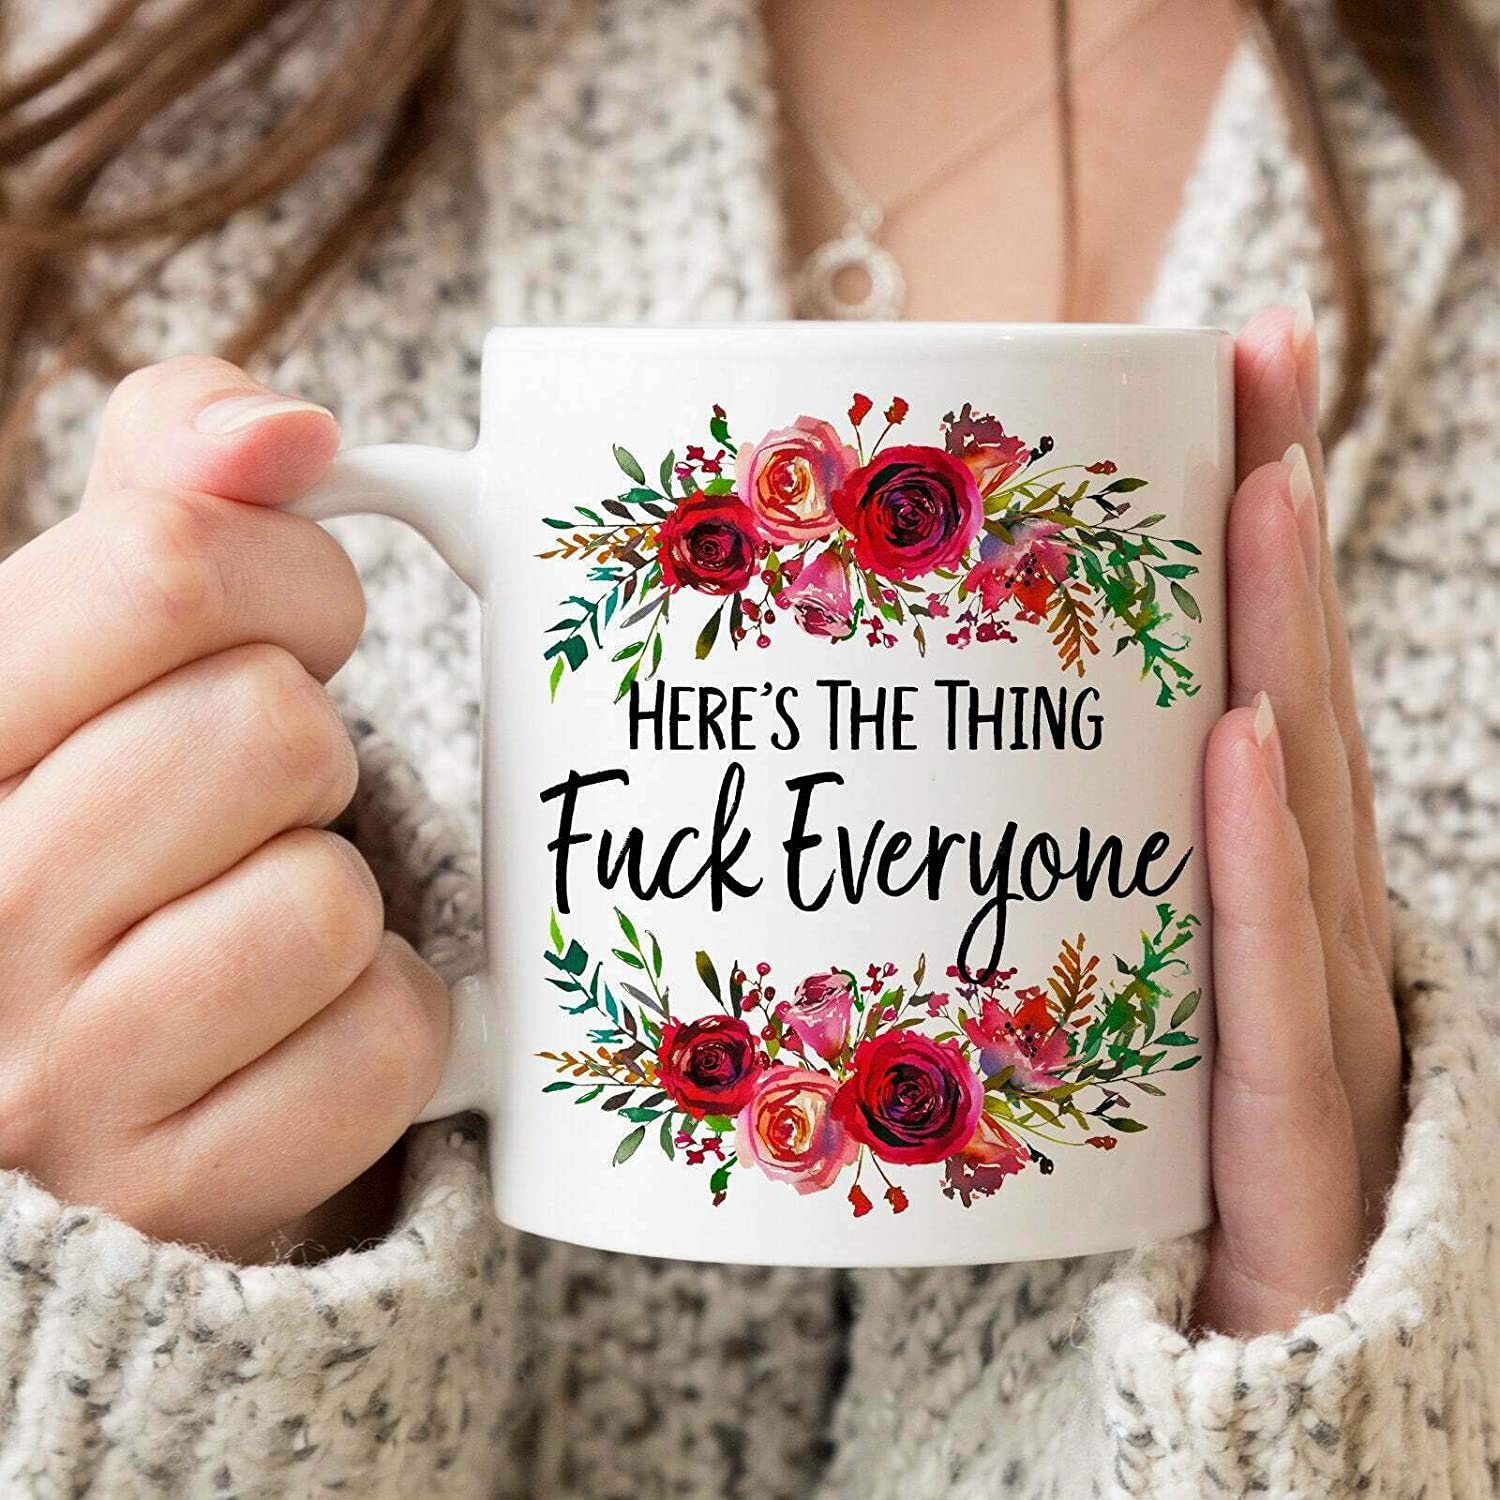 Here's The Thing Fck Everyone Max 44% OFF Coffee My Favorite Spring new work one after another Murder Ssd Mug